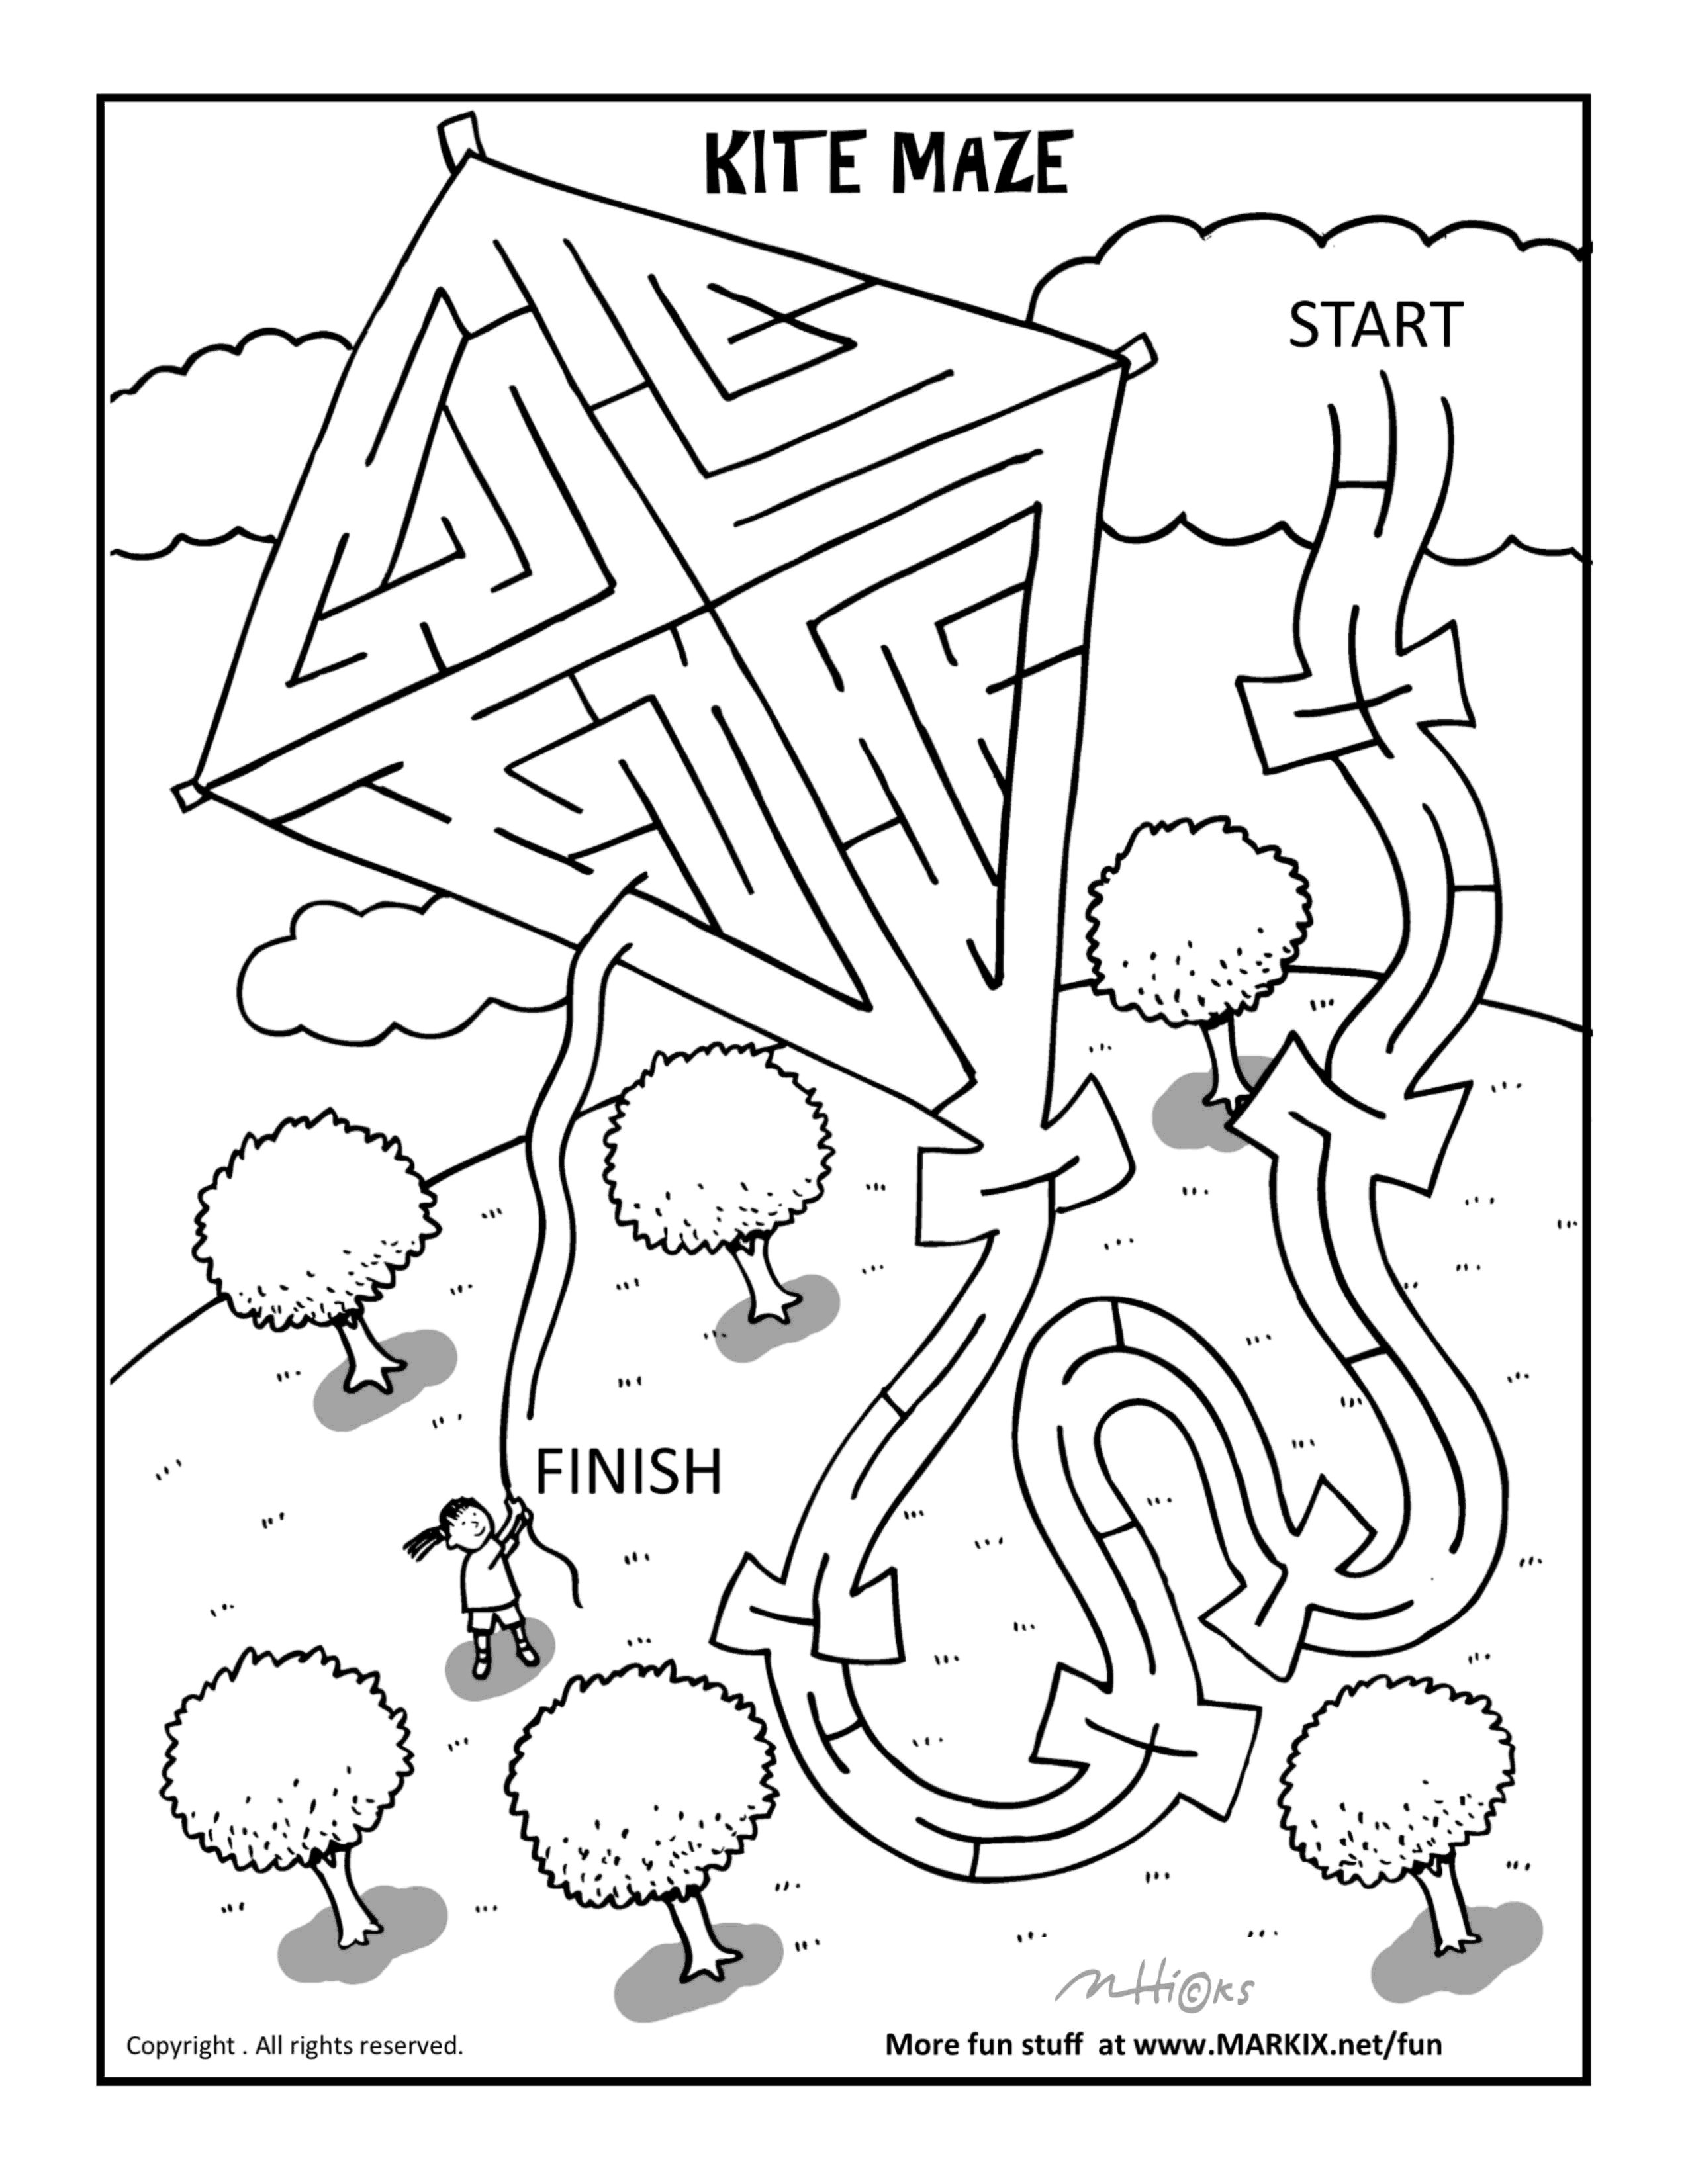 kite maze and coloring page for kids 5 and up - Coloring Activity For Kids